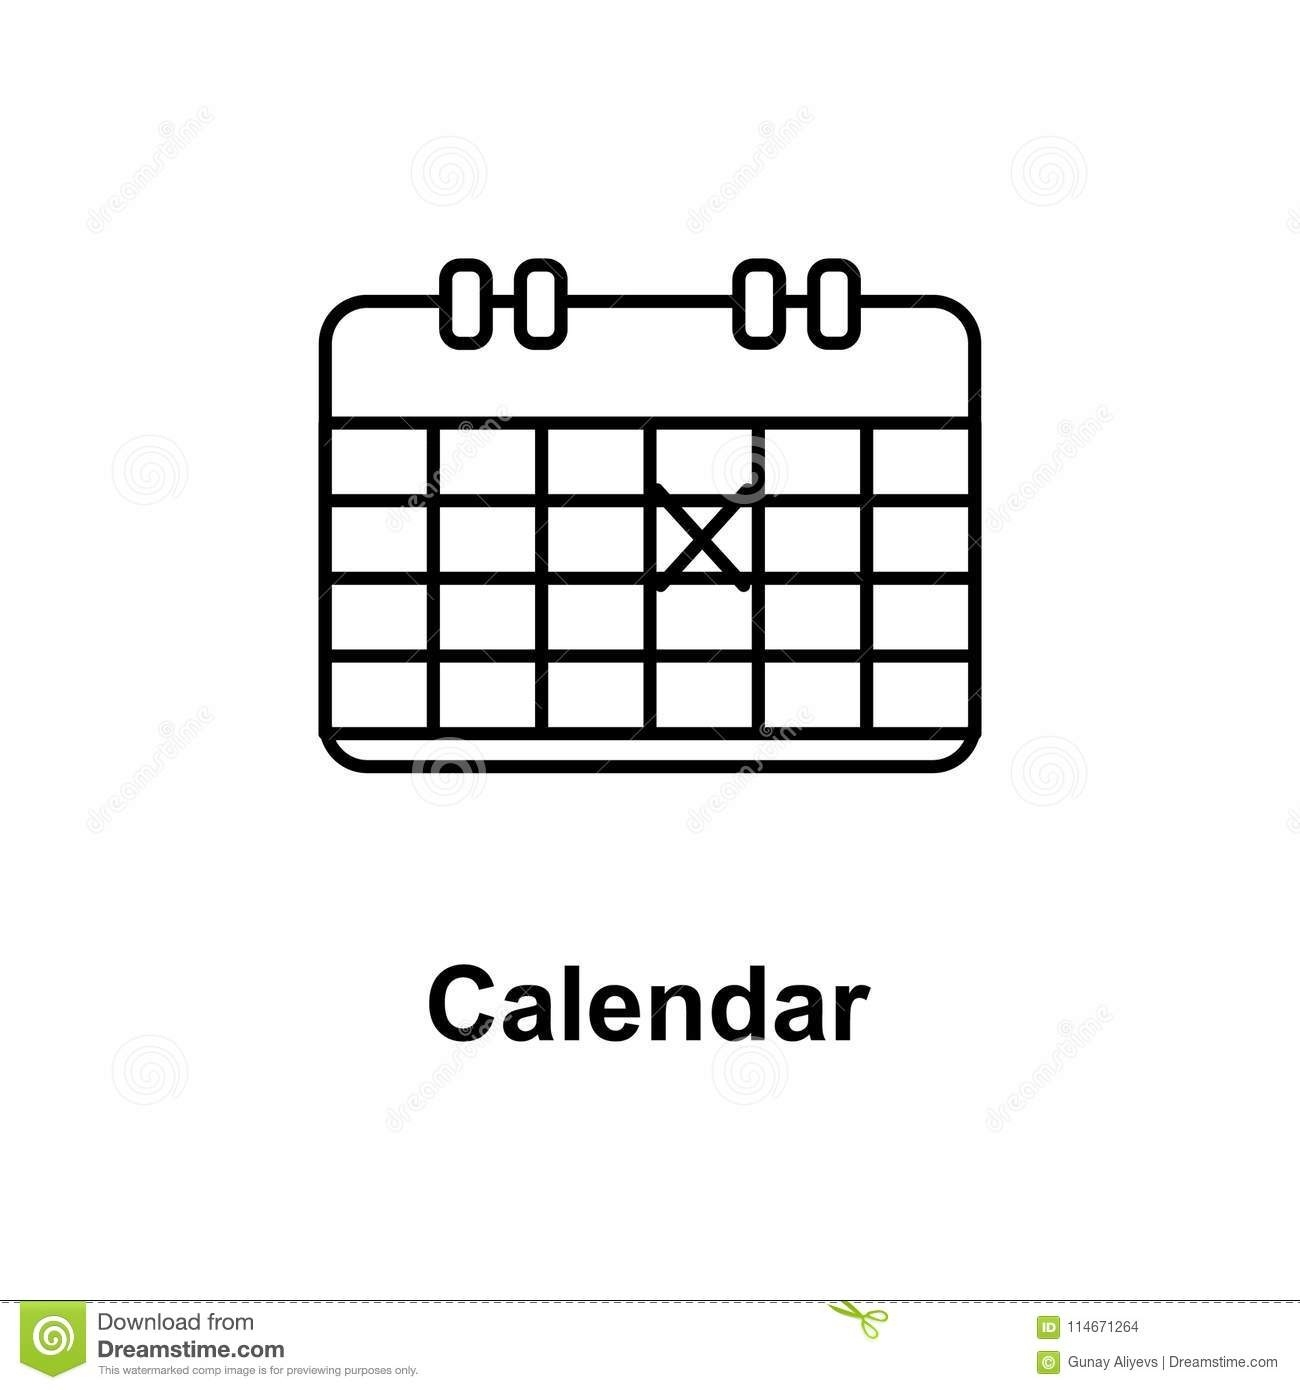 The Calendar Icon. Element Of School Icon For Mobile Concept And Web_Calendar Icon For Website